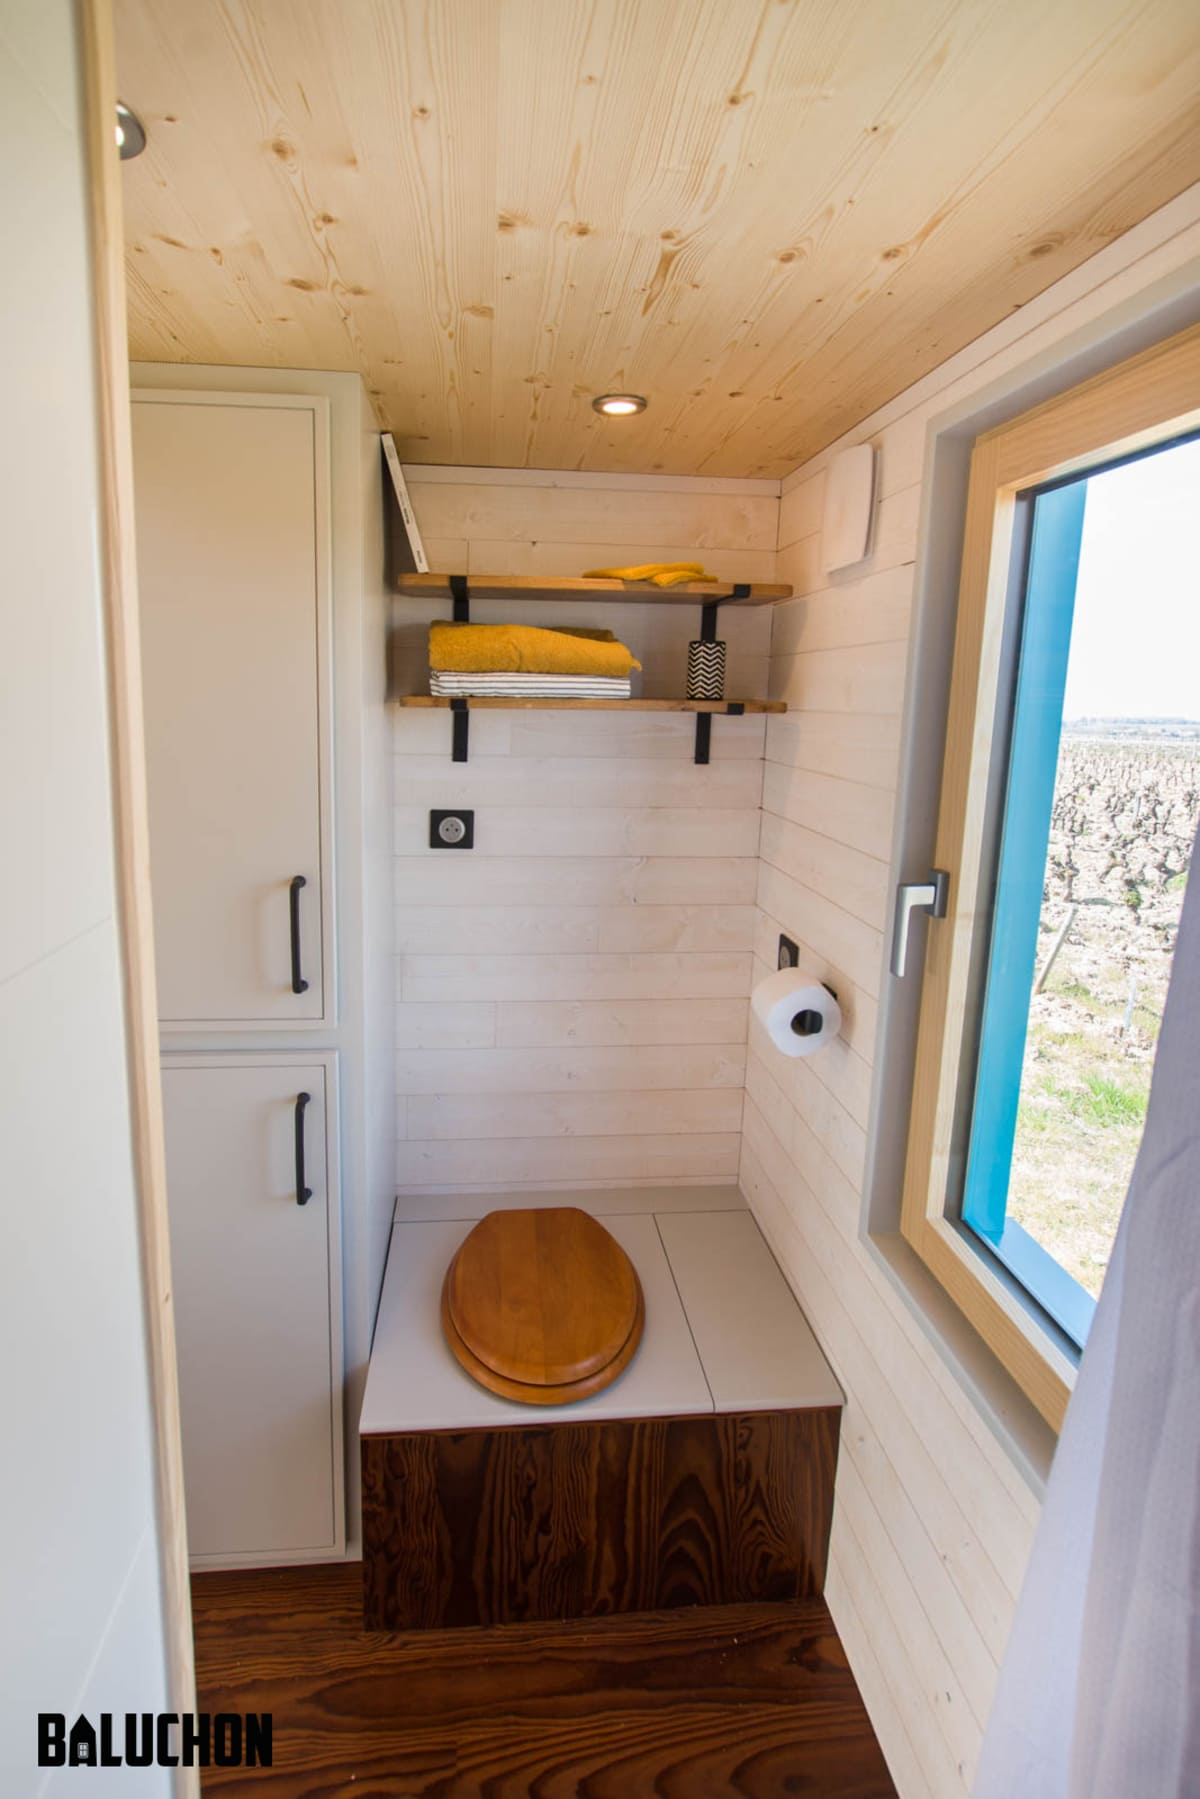 tiny house baluchon 2 - Mother and daughter live full time in stunning tiny house with cool hammock floor